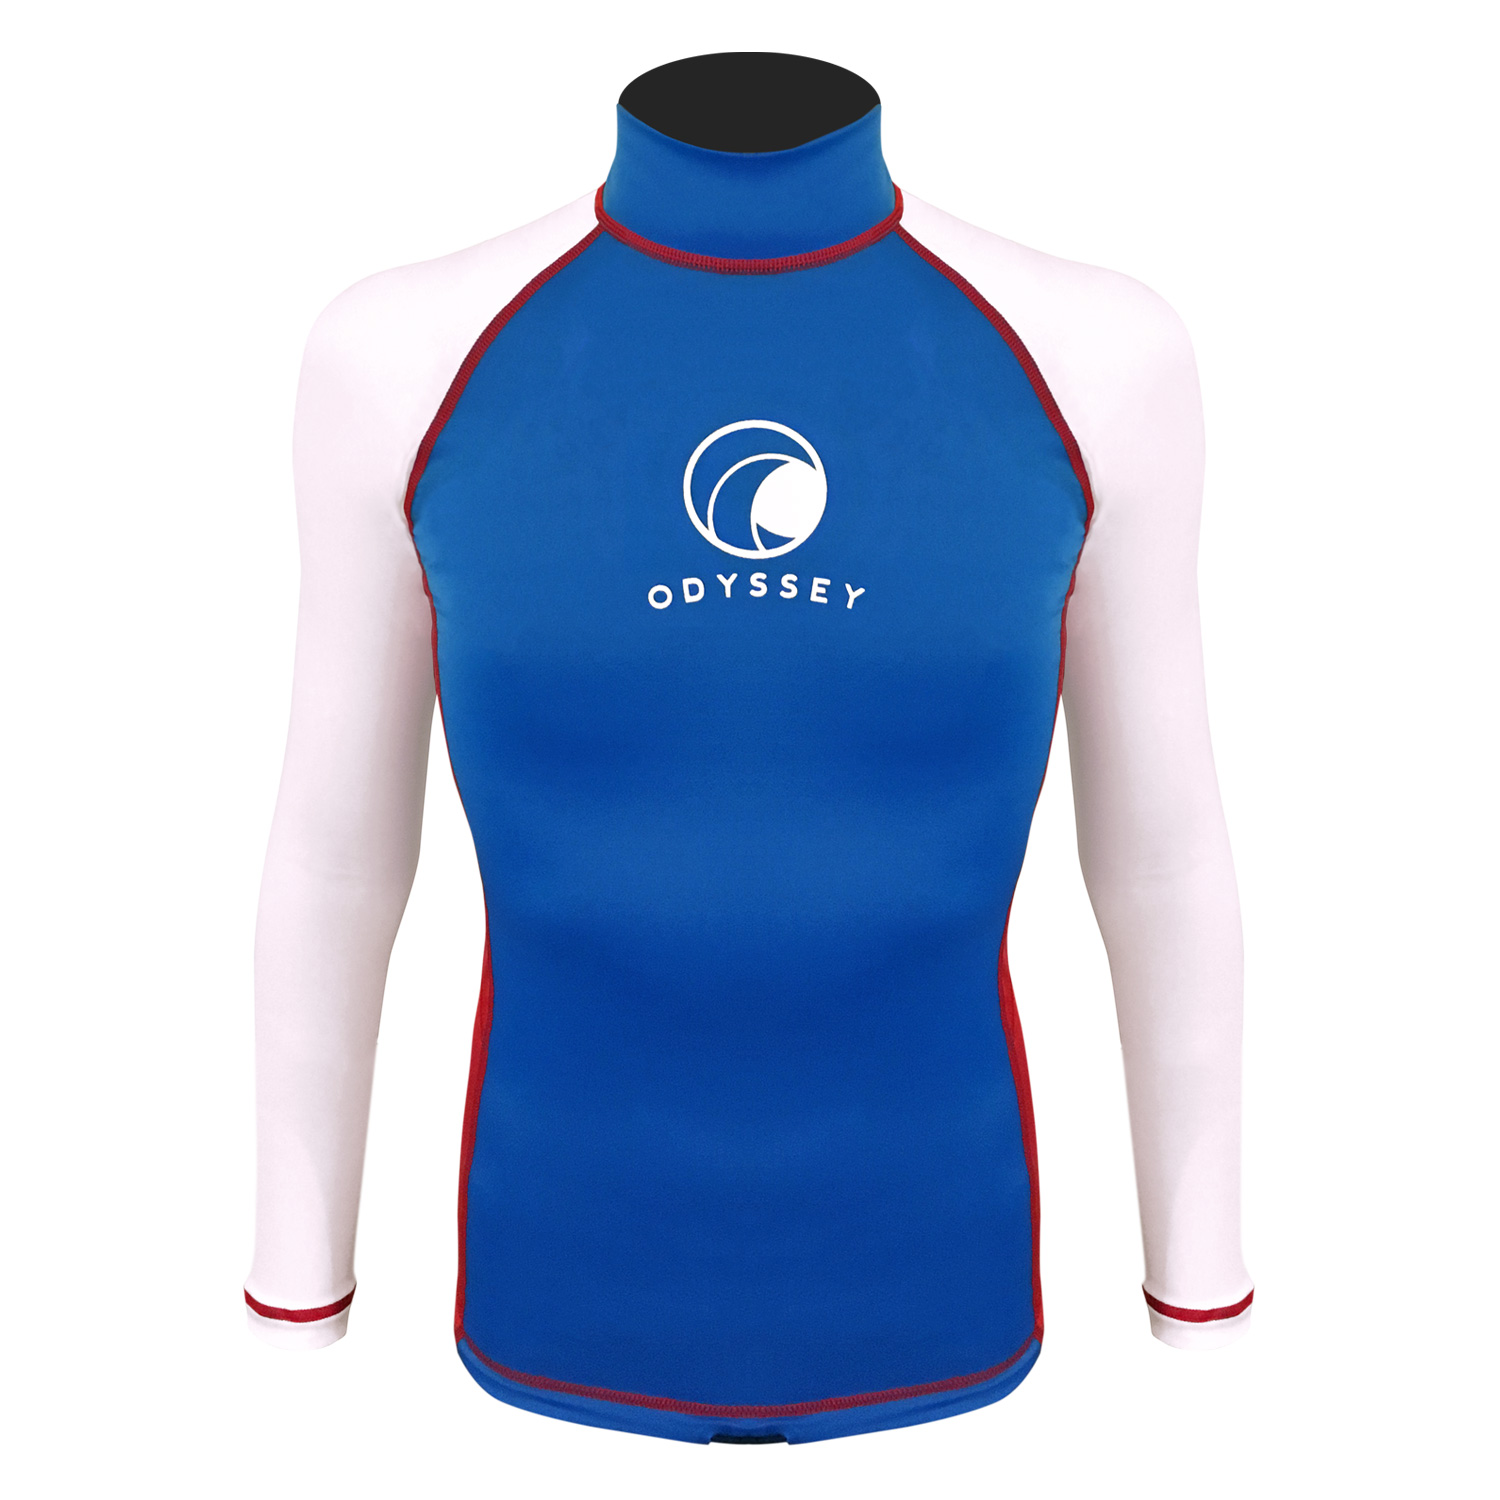 Odyssey-Kids-Long-Sleeve-Child-Rash-Vest-Beach-Swim-Boys-Girls-UV50-Sun-Guard thumbnail 19